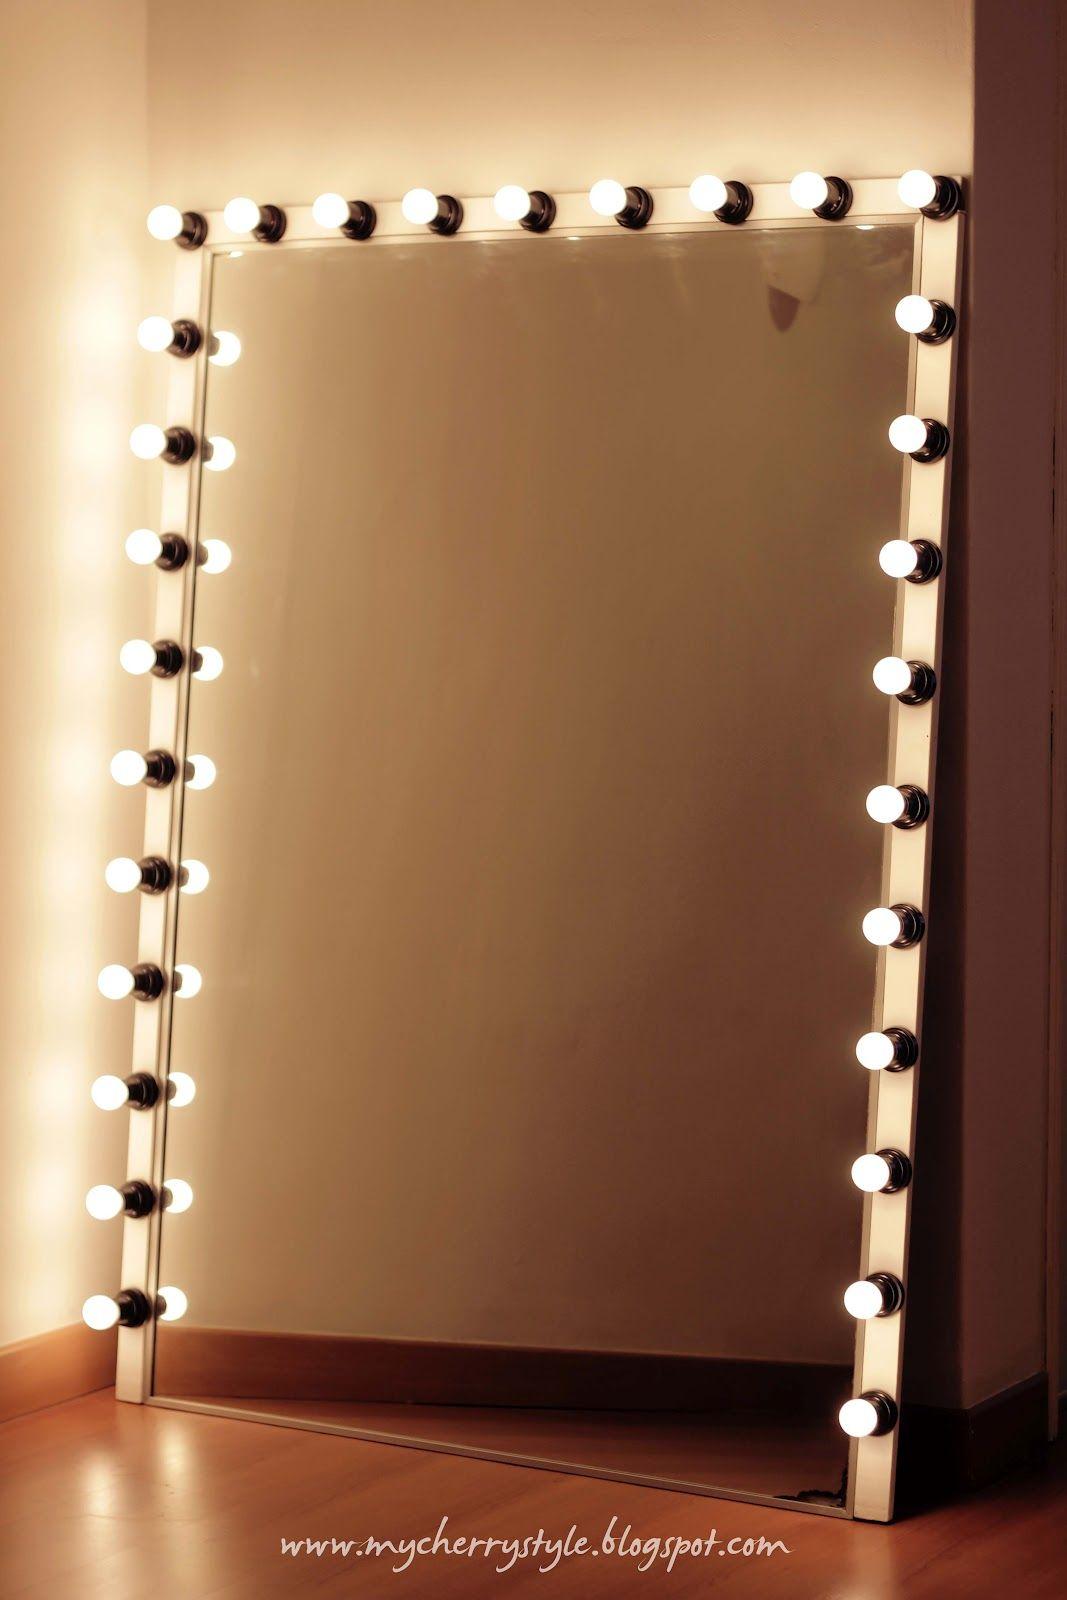 Big Vanity Mirror With Lights Entrancing Diy Hollywoodstyle Mirror With Lights Tutorial From Scratchfor Inspiration Design